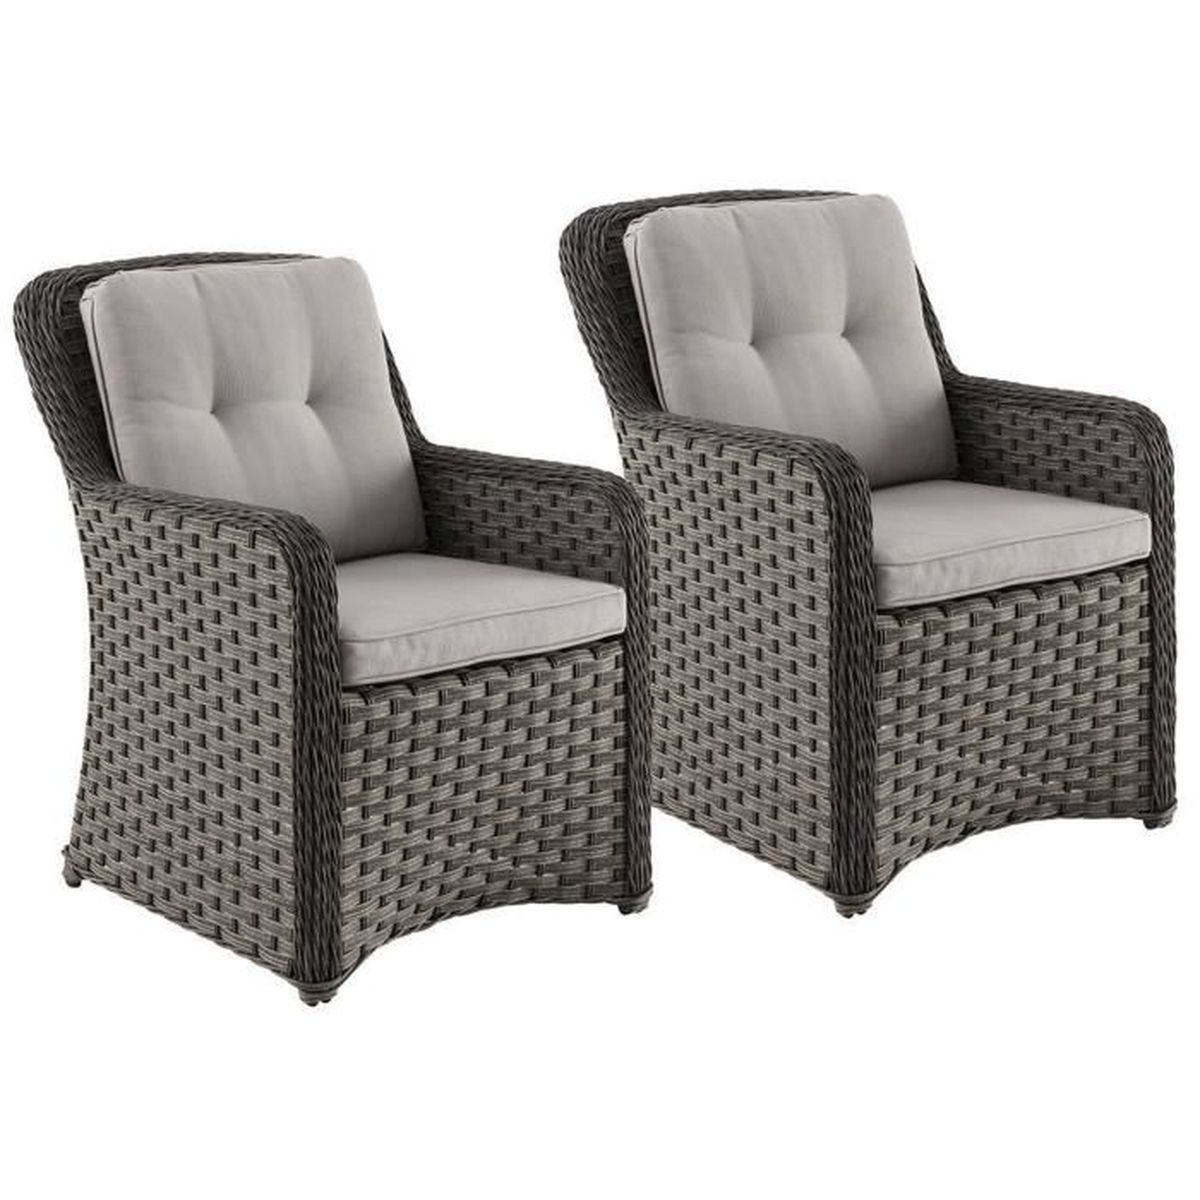 lot de 4 fauteuils de jardin en r sine synth tique tress e. Black Bedroom Furniture Sets. Home Design Ideas